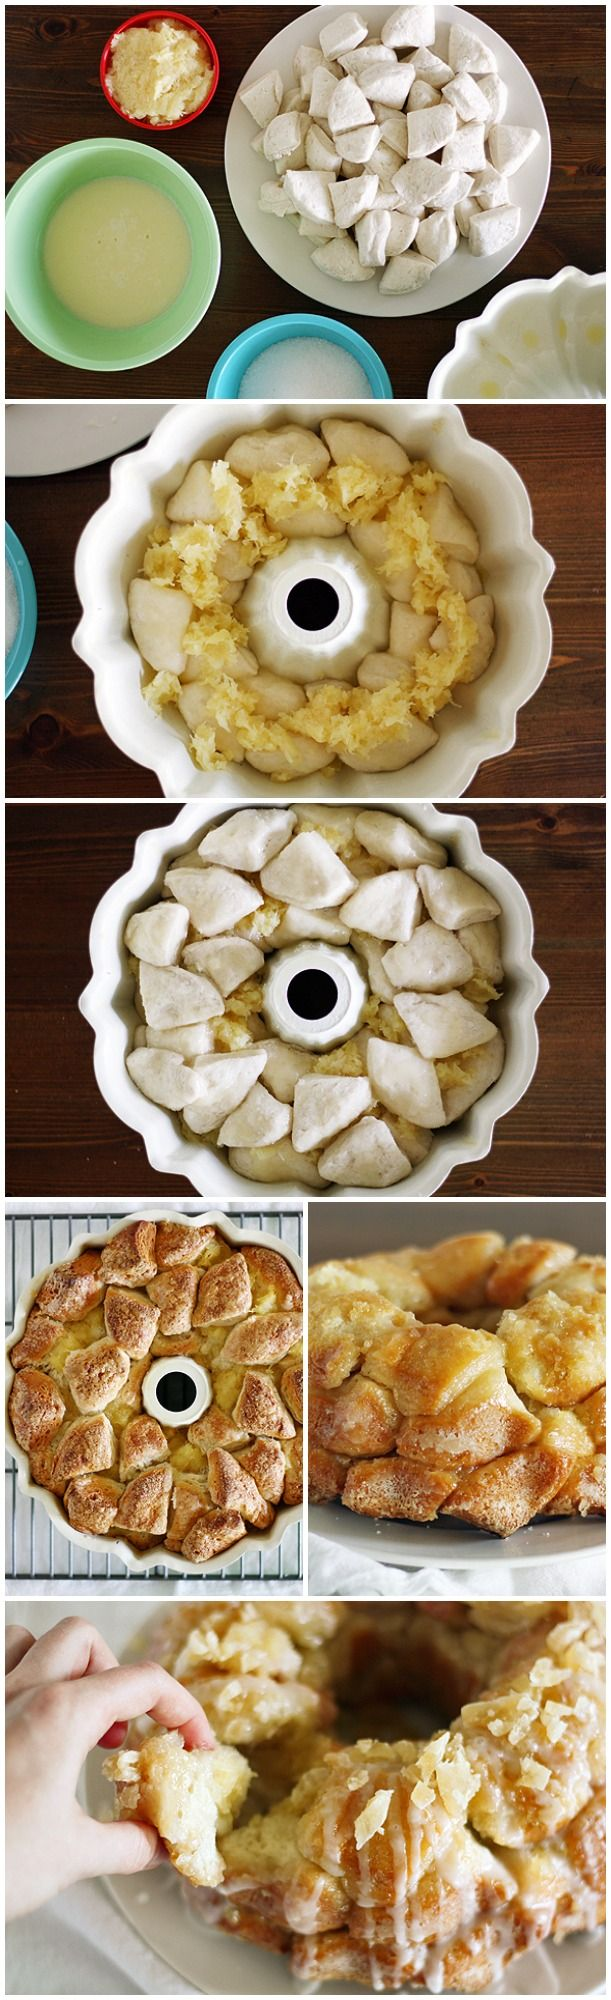 Piña Colada Monkey Bread - One of those easy delicious desserts that look like you spent all day in the kitchen. Those little white triangles are cut up Pillsbury Grands Biscuit dough!